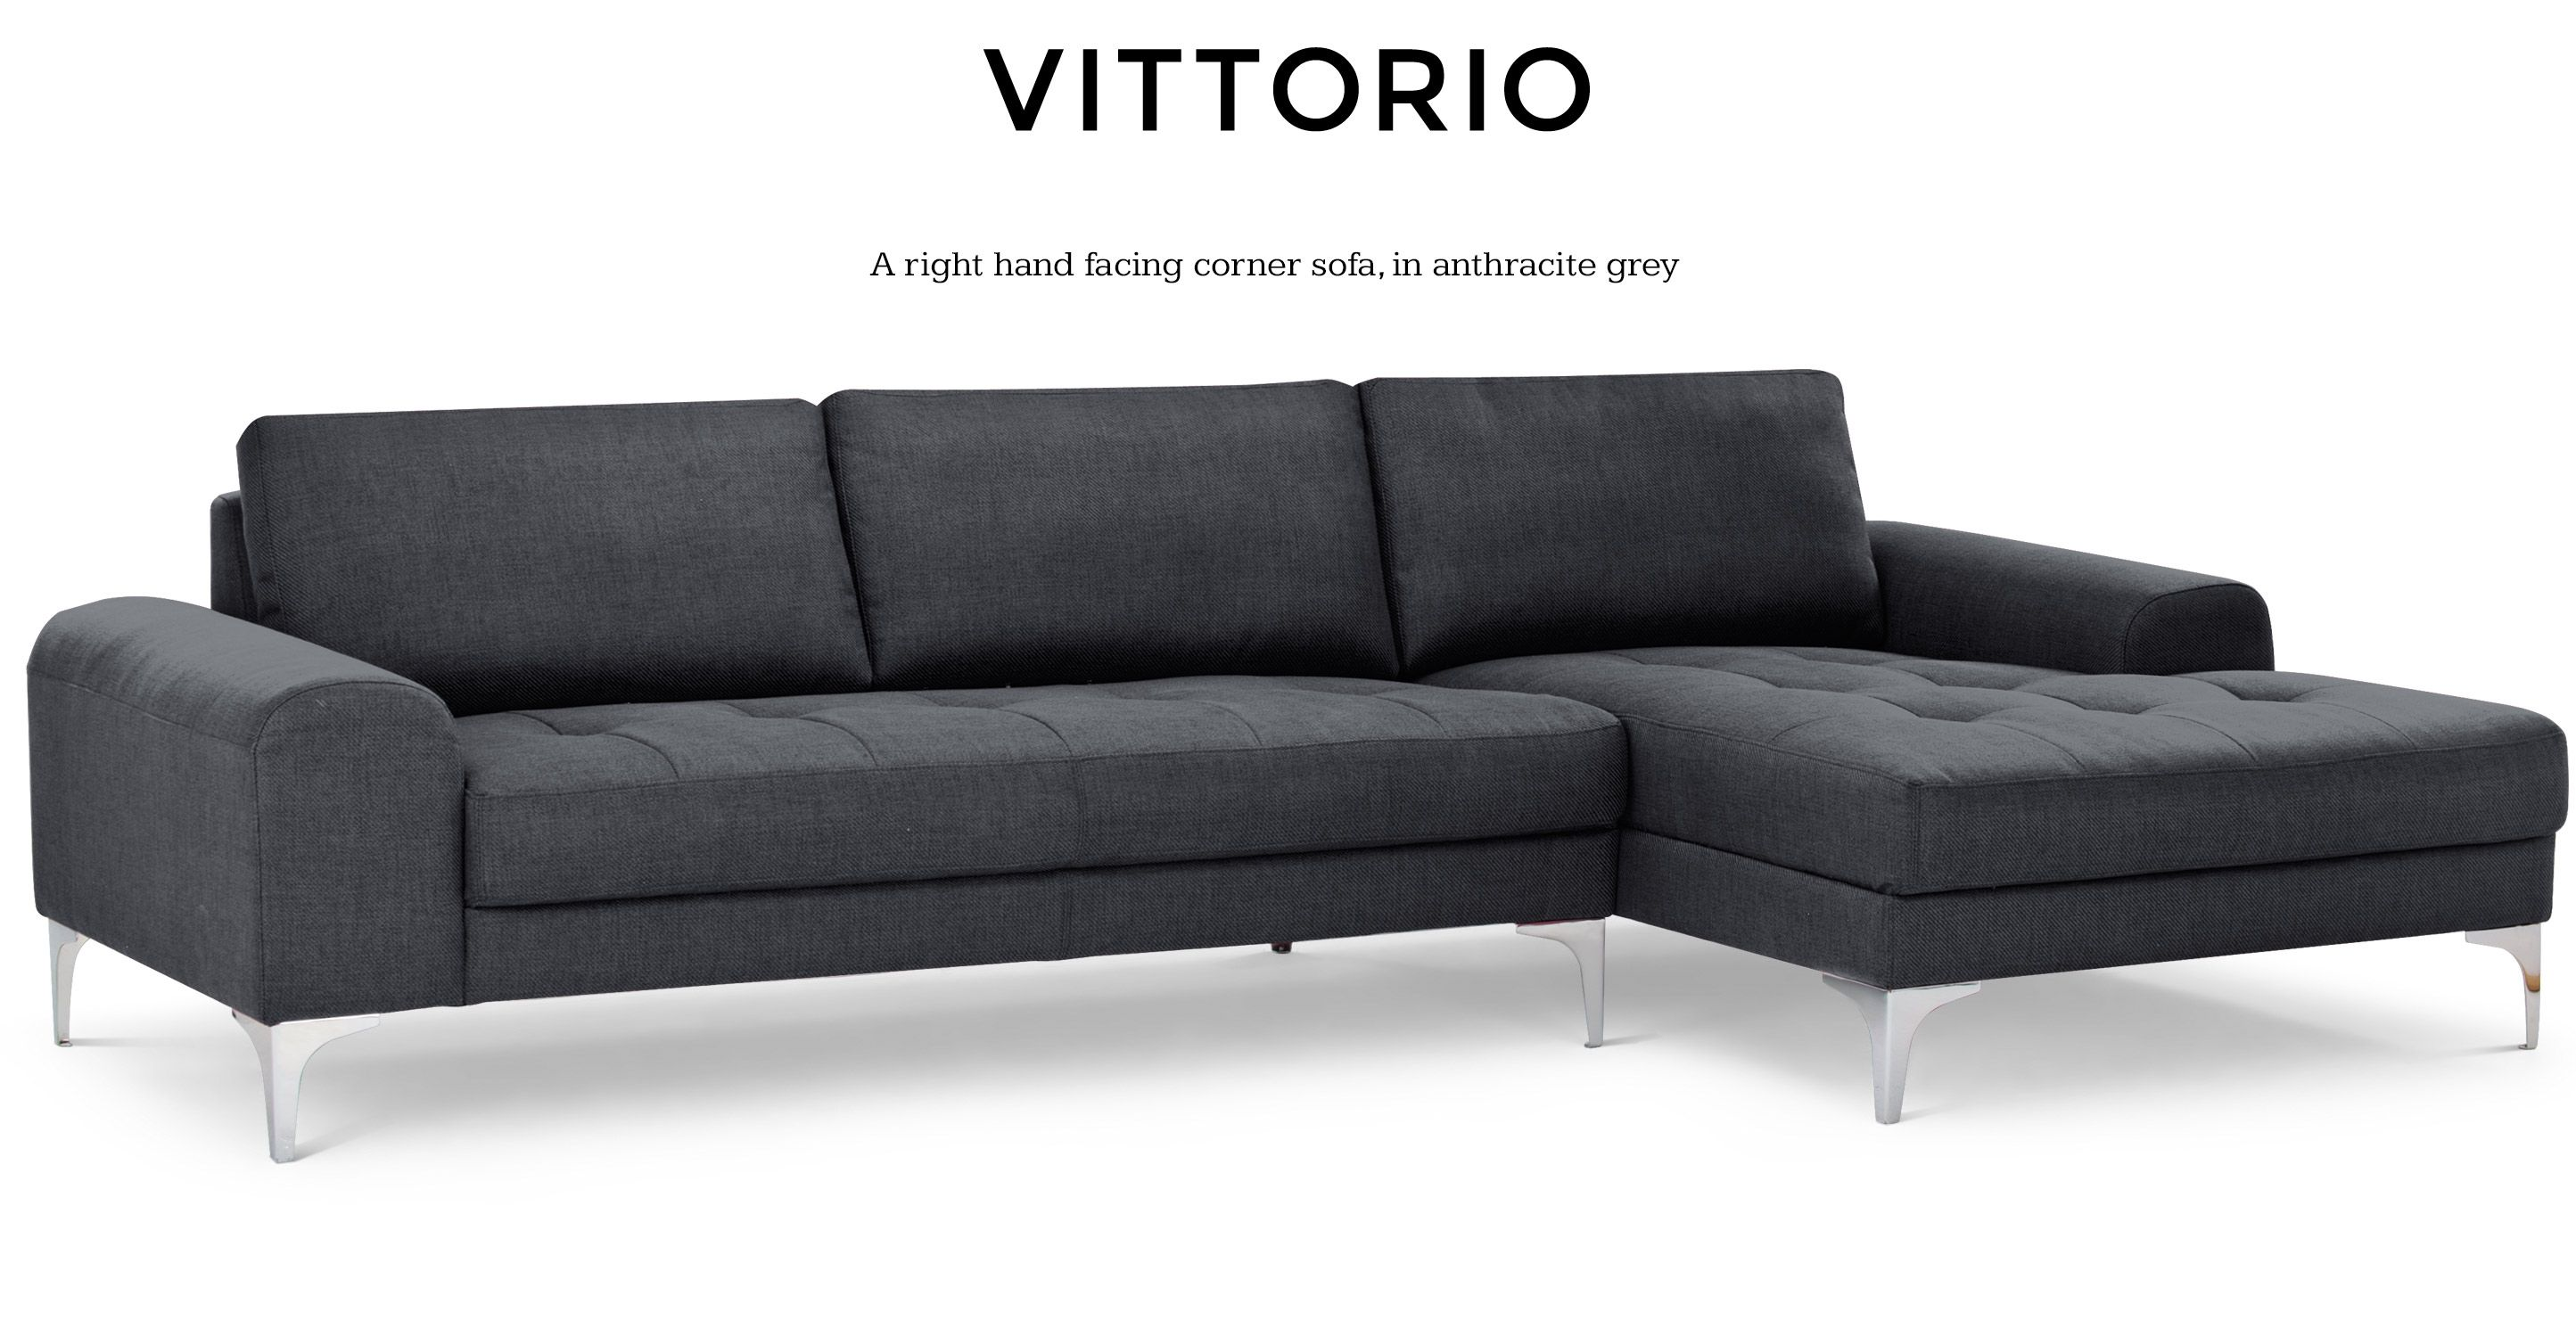 Vittorio Right Hand Facing Corner Sofa Group Anthracite Grey Corner Sofa Sofa Scandinavian Sofas